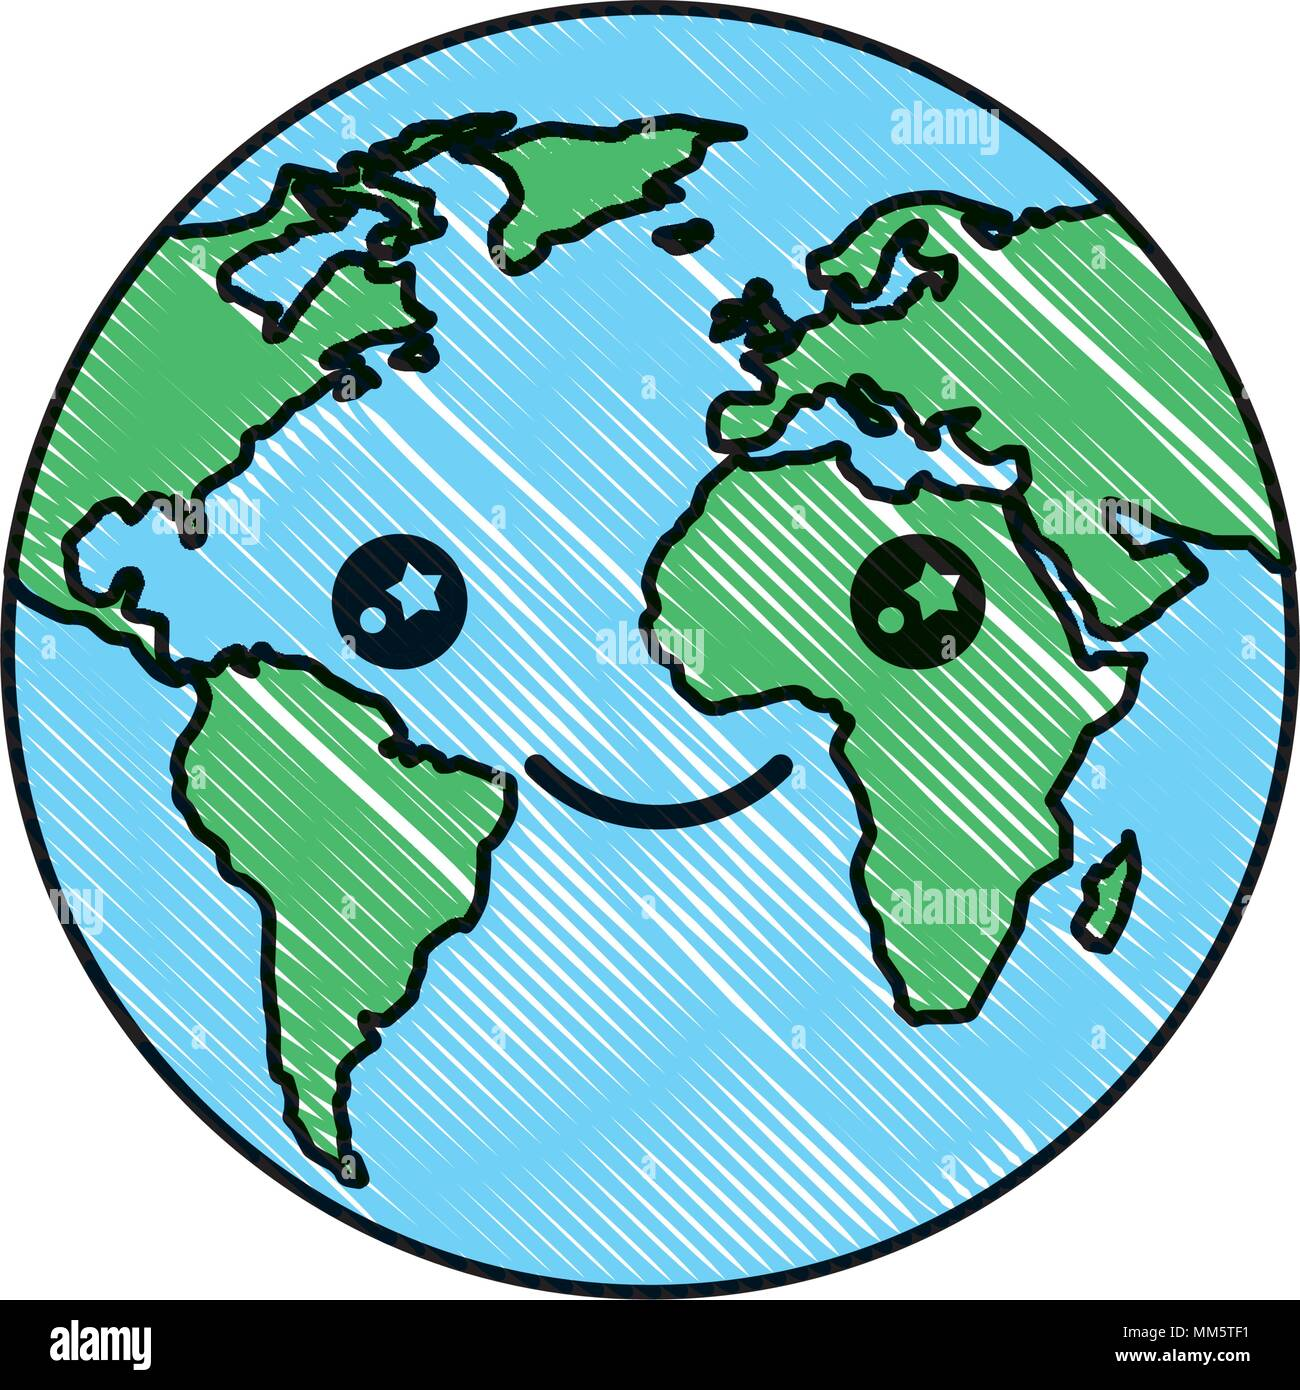 World Globe Cartoon High Resolution Stock Photography And Images Alamy By downloading cartoon globe transparent png you agree with our terms of use. https www alamy com cartoon world globe kawaii happy vector illustration image184525797 html